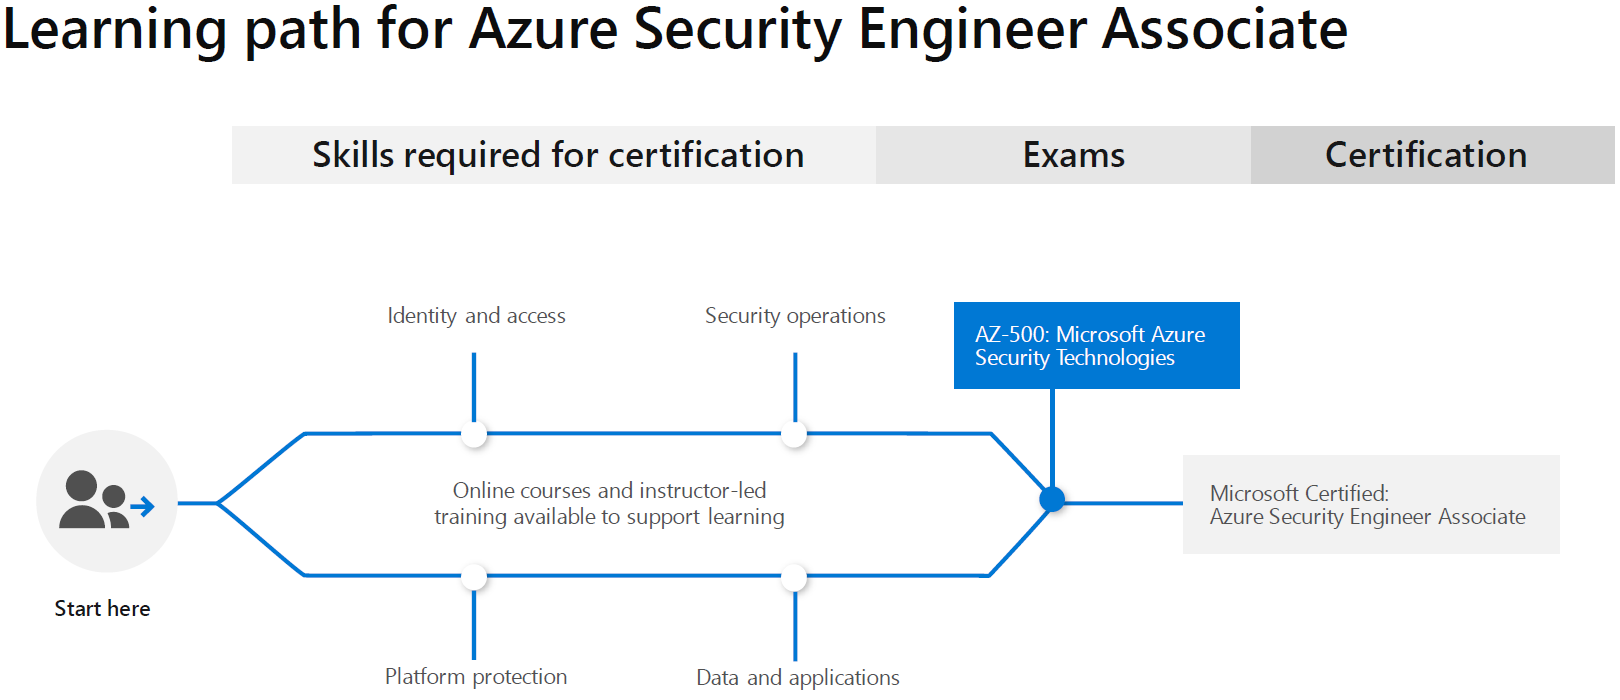 Learning Path for Azure Security Engineer Associate